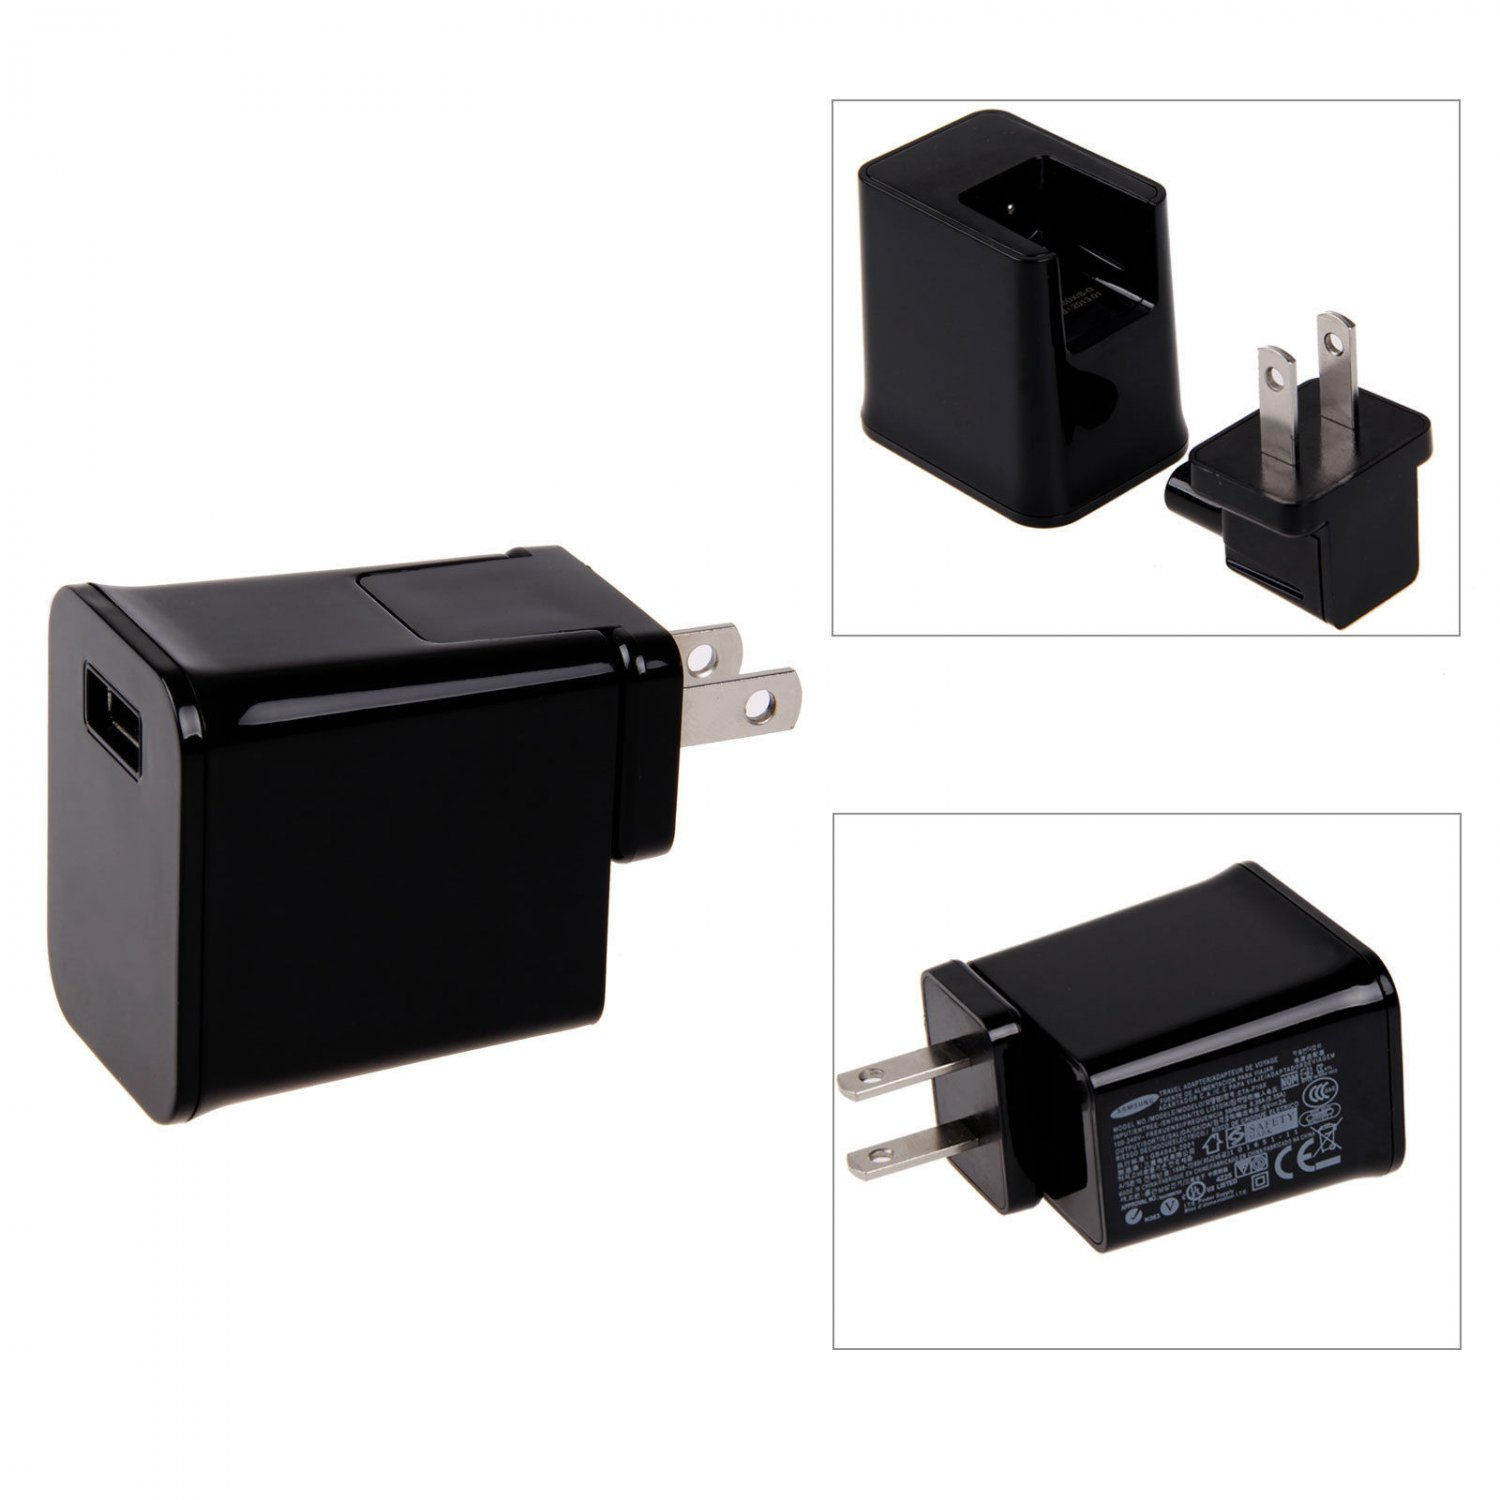 US Plug 2A USB Wall Charger Adapter For Samsung Galaxy Tab 2 7.7 8.9 10.1 Tablet